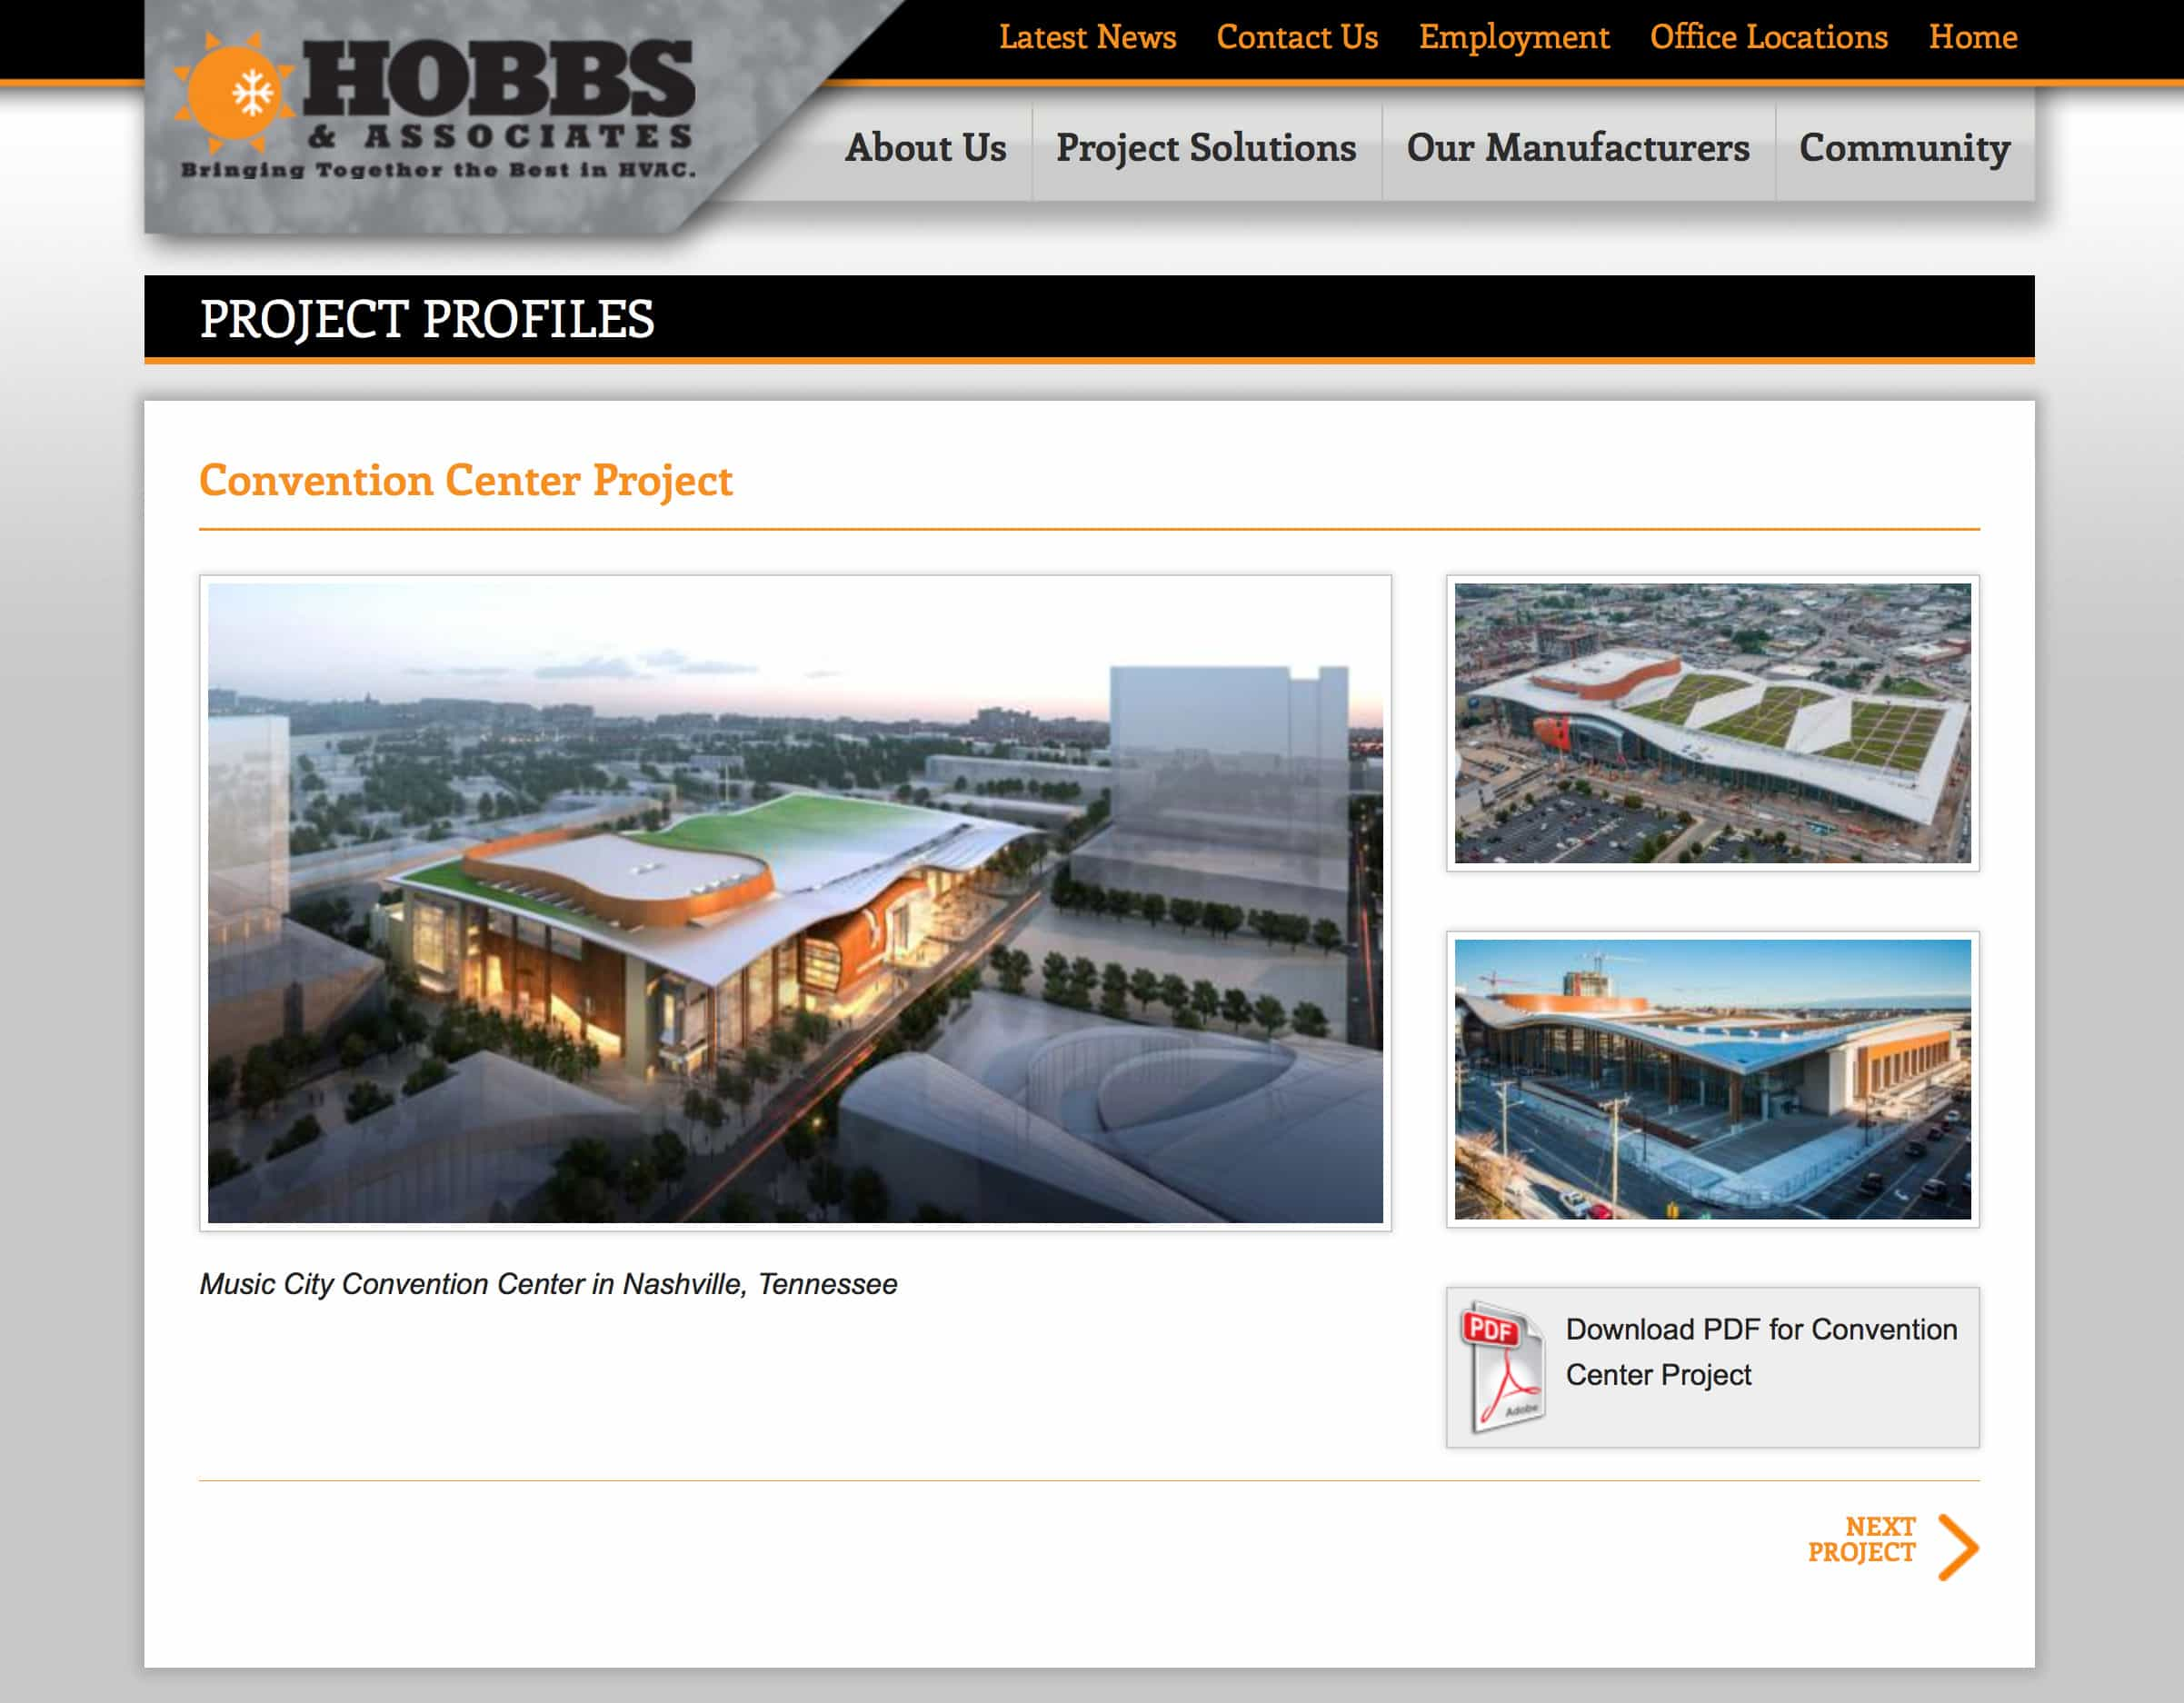 Hobbs & Associates - Web Design